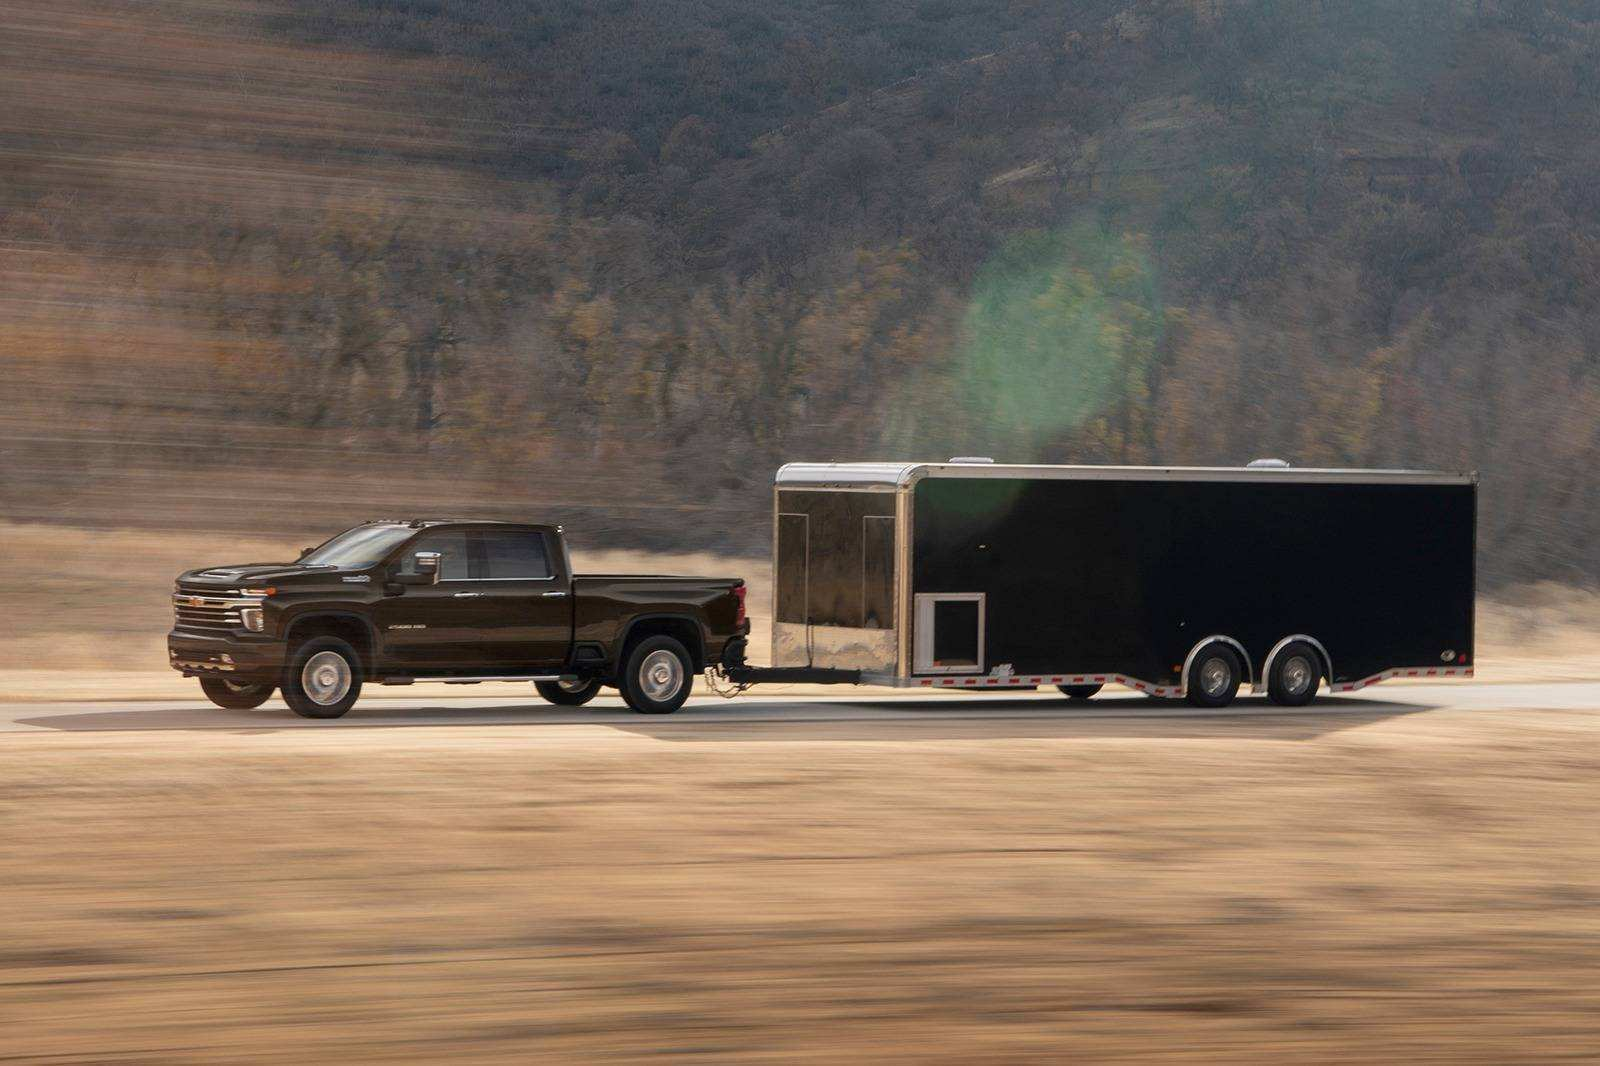 38 New 2020 Chevrolet Work Truck Images